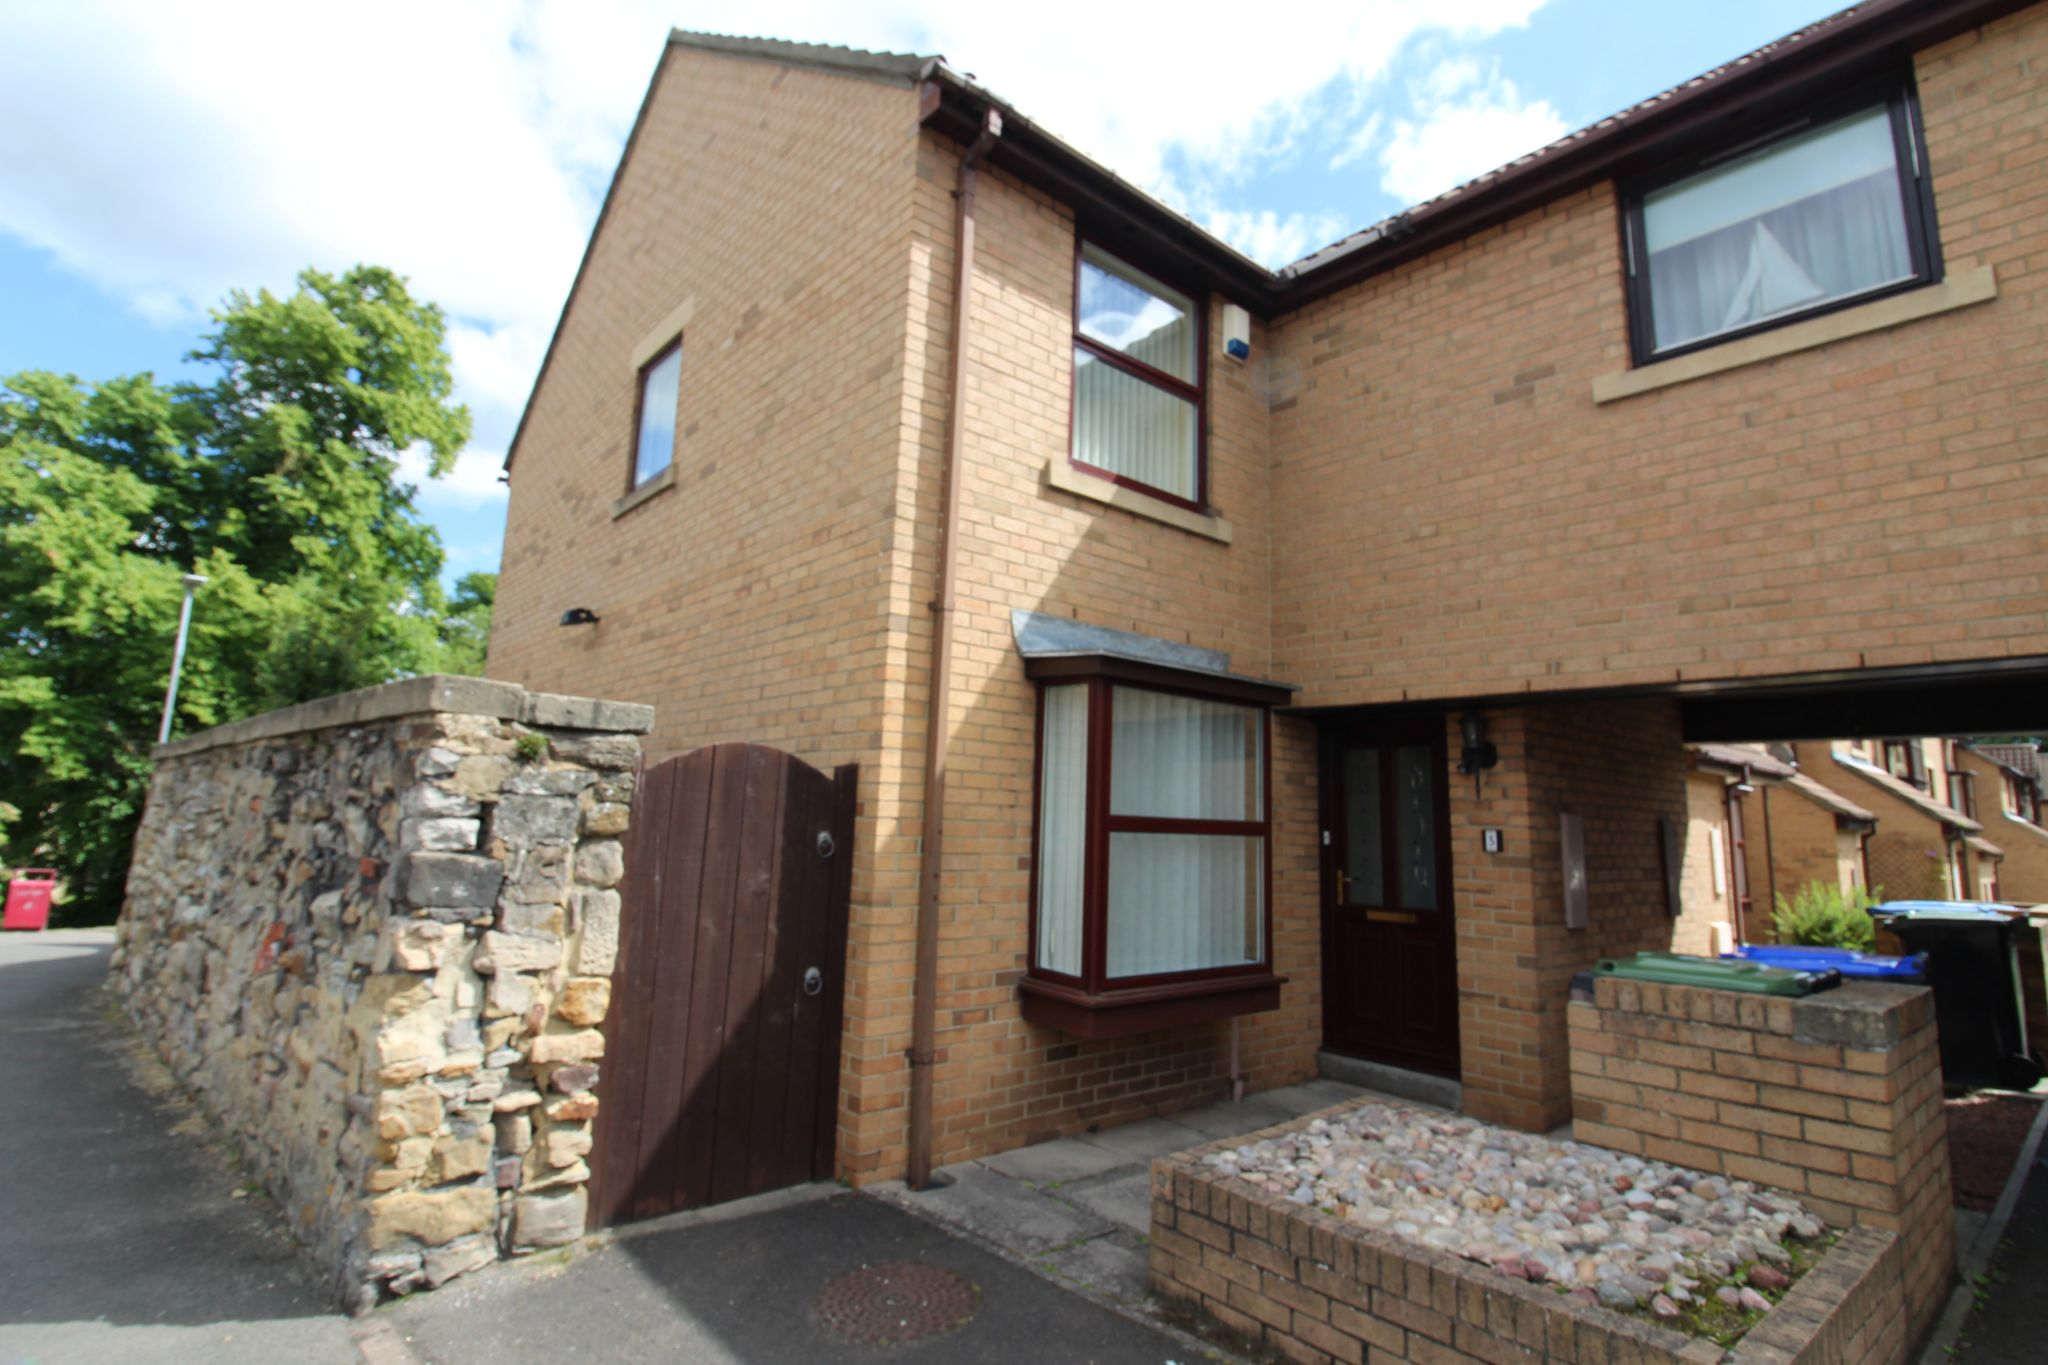 2 bedroom end terraced house To Let in Chester Le Street - Photograph 1.